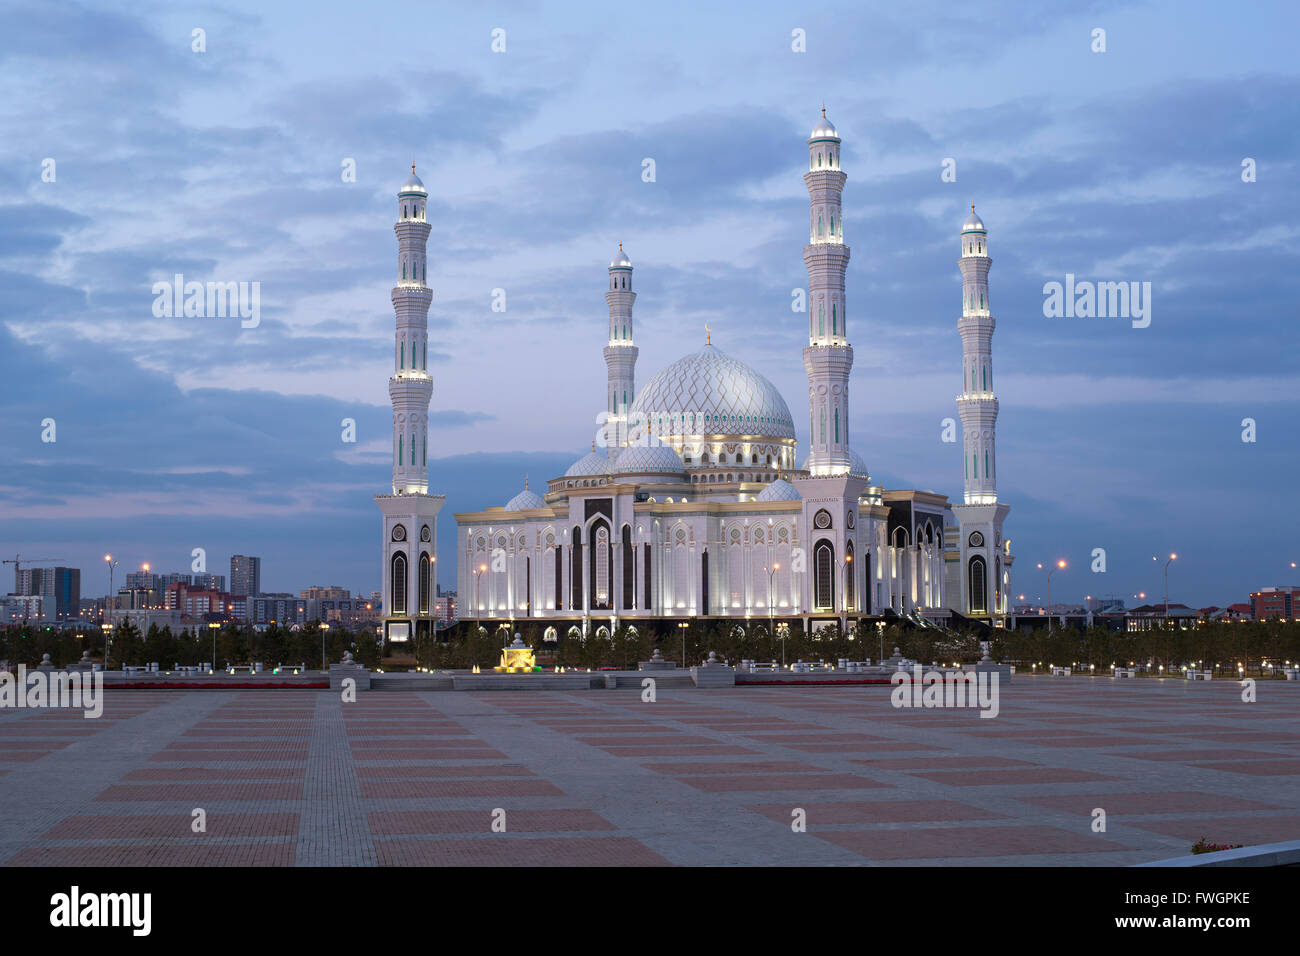 Hazrat Sultan Mosque, the largest in Central Asia, at dusk, Astana, Kazakhstan, Central Asia - Stock Image